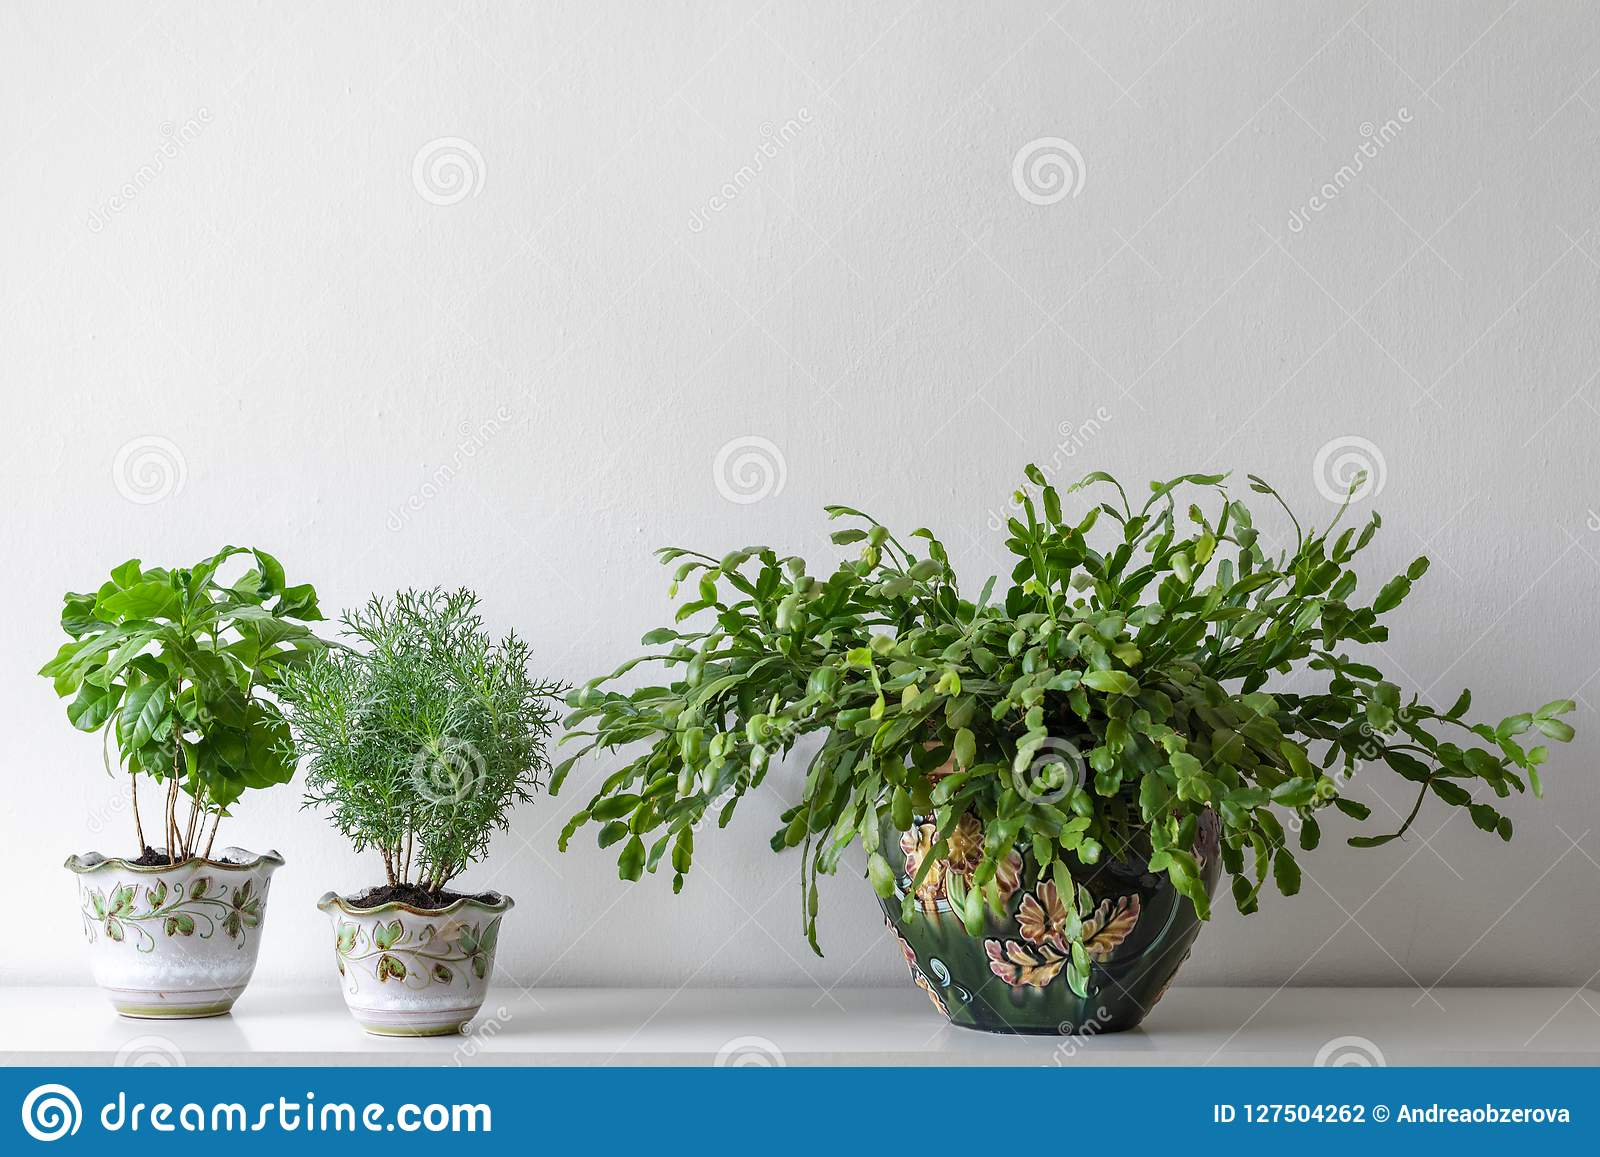 Various house plants in different pots against white wall. Indoor potted plants background with copy space.